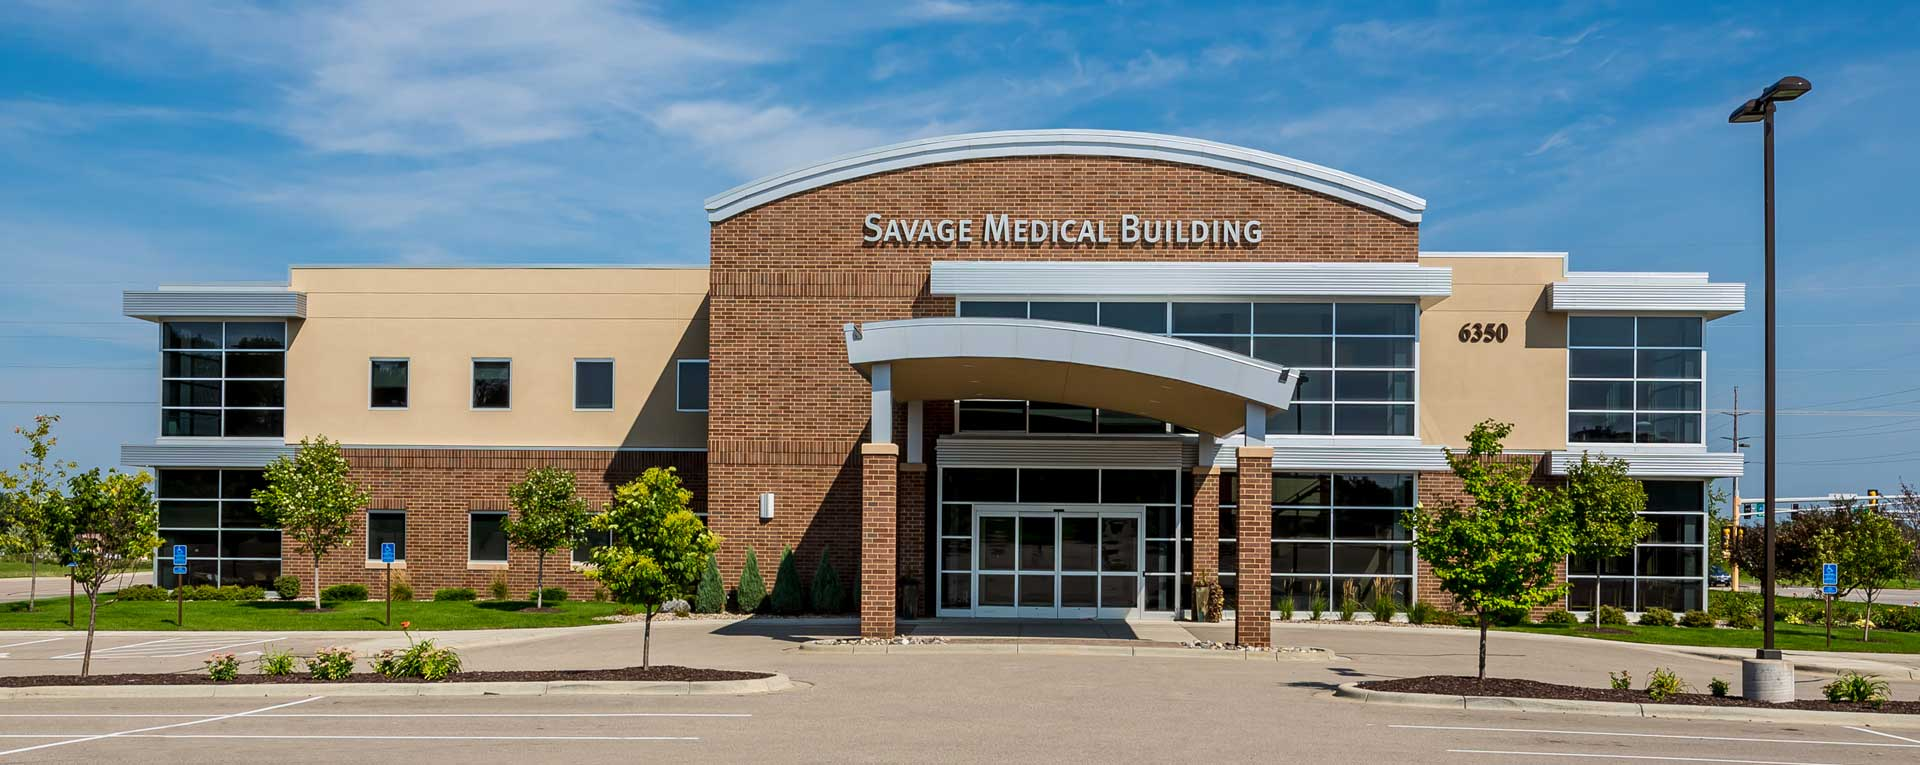 Savage Medical Building